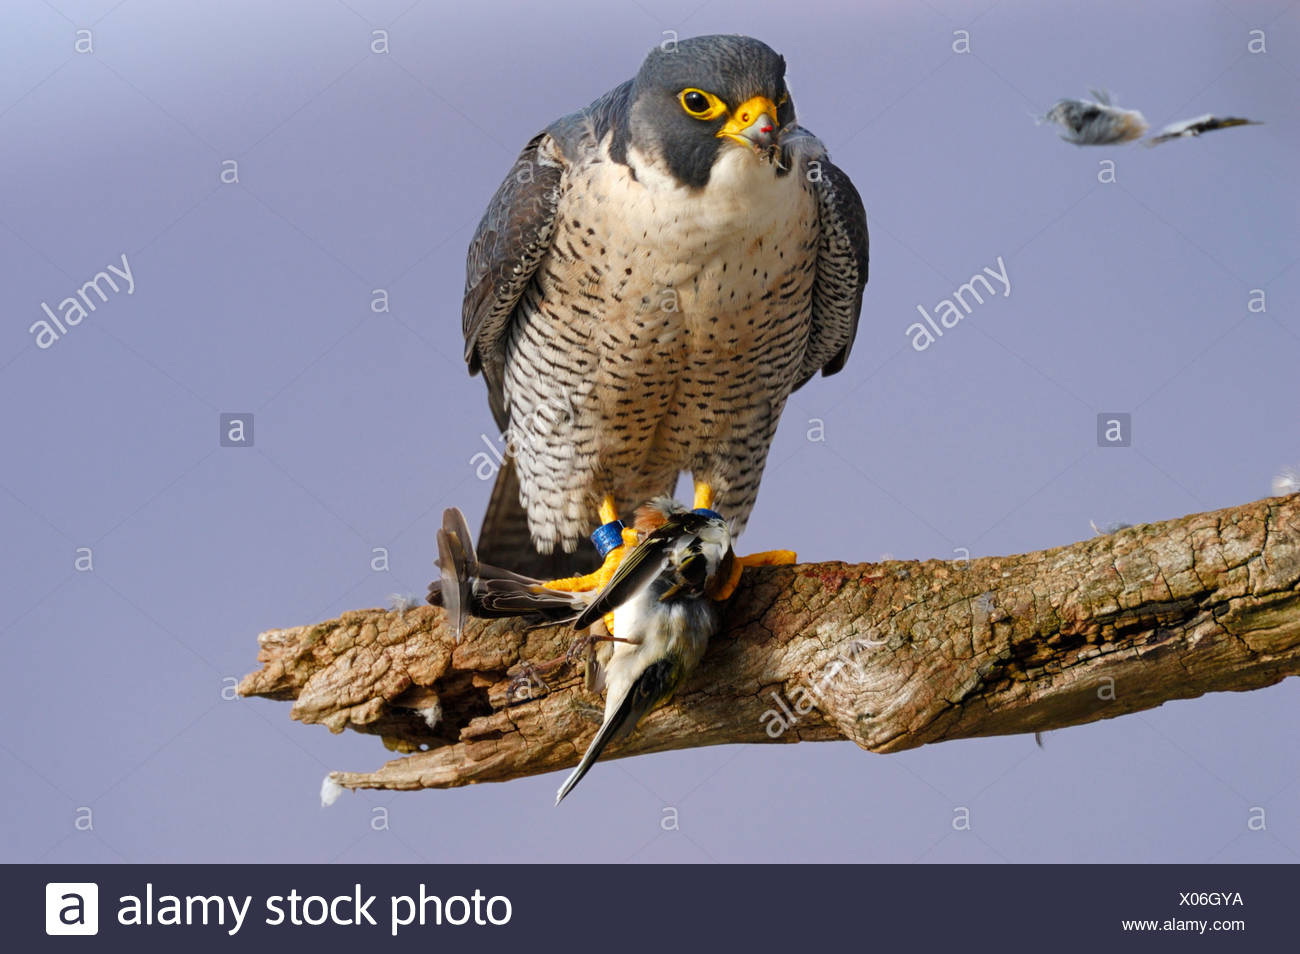 Peregrine Falcon (Falco peregrinus) with his prey, a dead chaffin, Germany - Stock Image